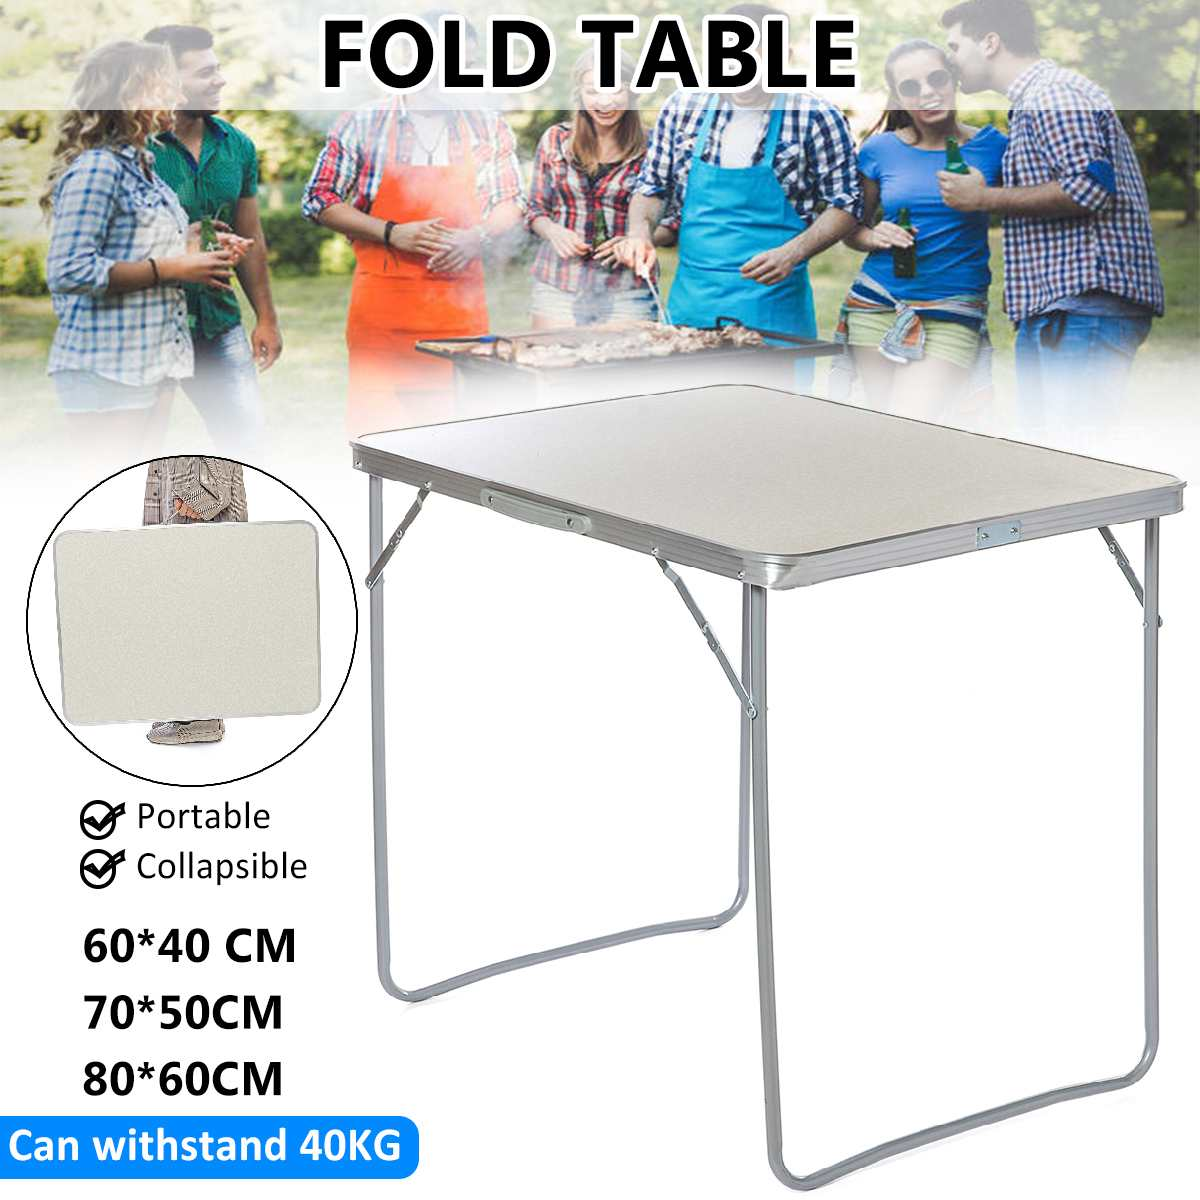 3 Size Portable Folding Table Aluminum Laptop Table Dining Outdoor Camping Picnic Beach Desk